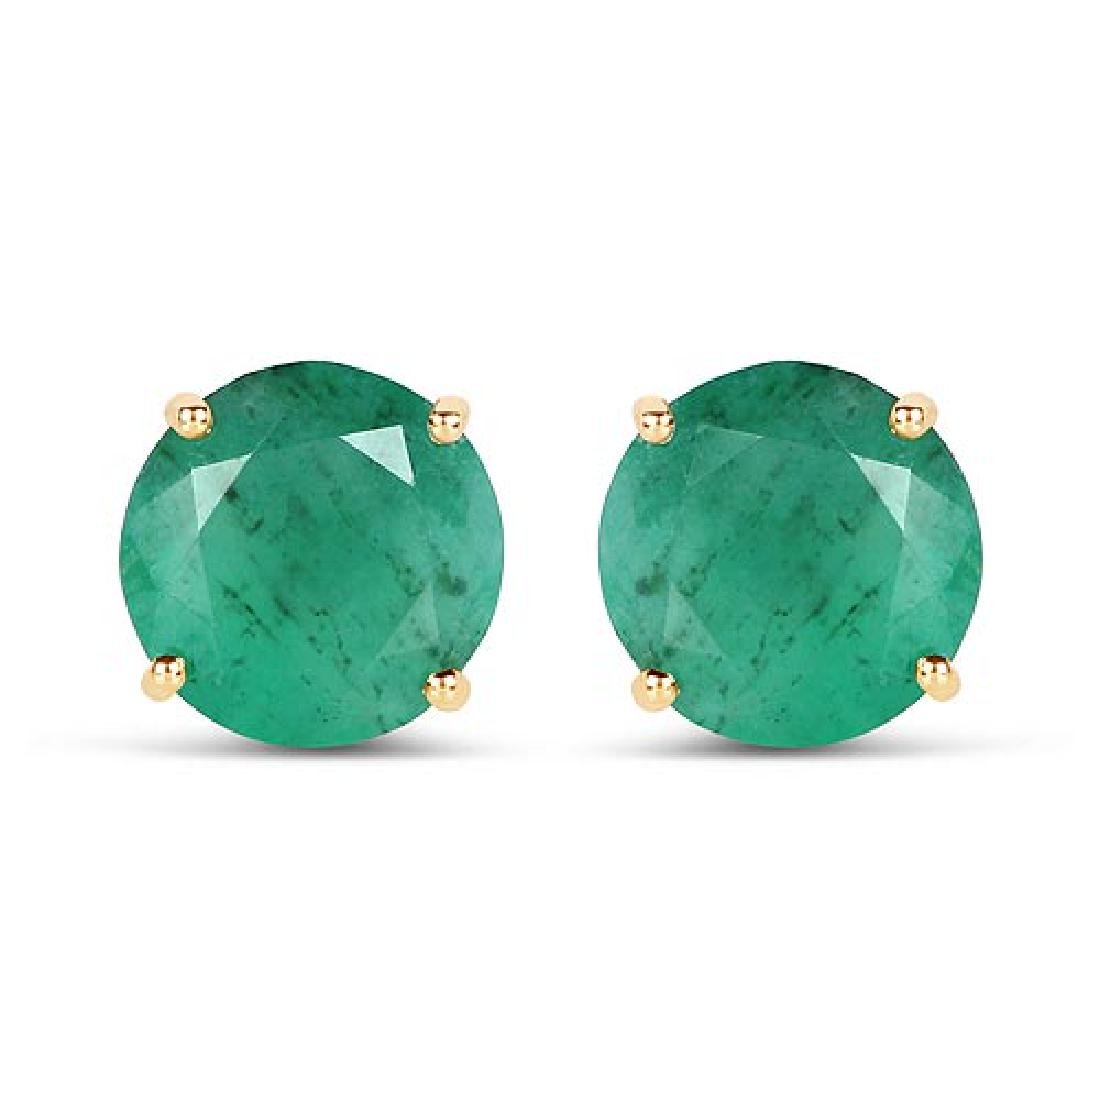 5.50 Carat Genuine Emerald 14K Yellow Gold Earrings